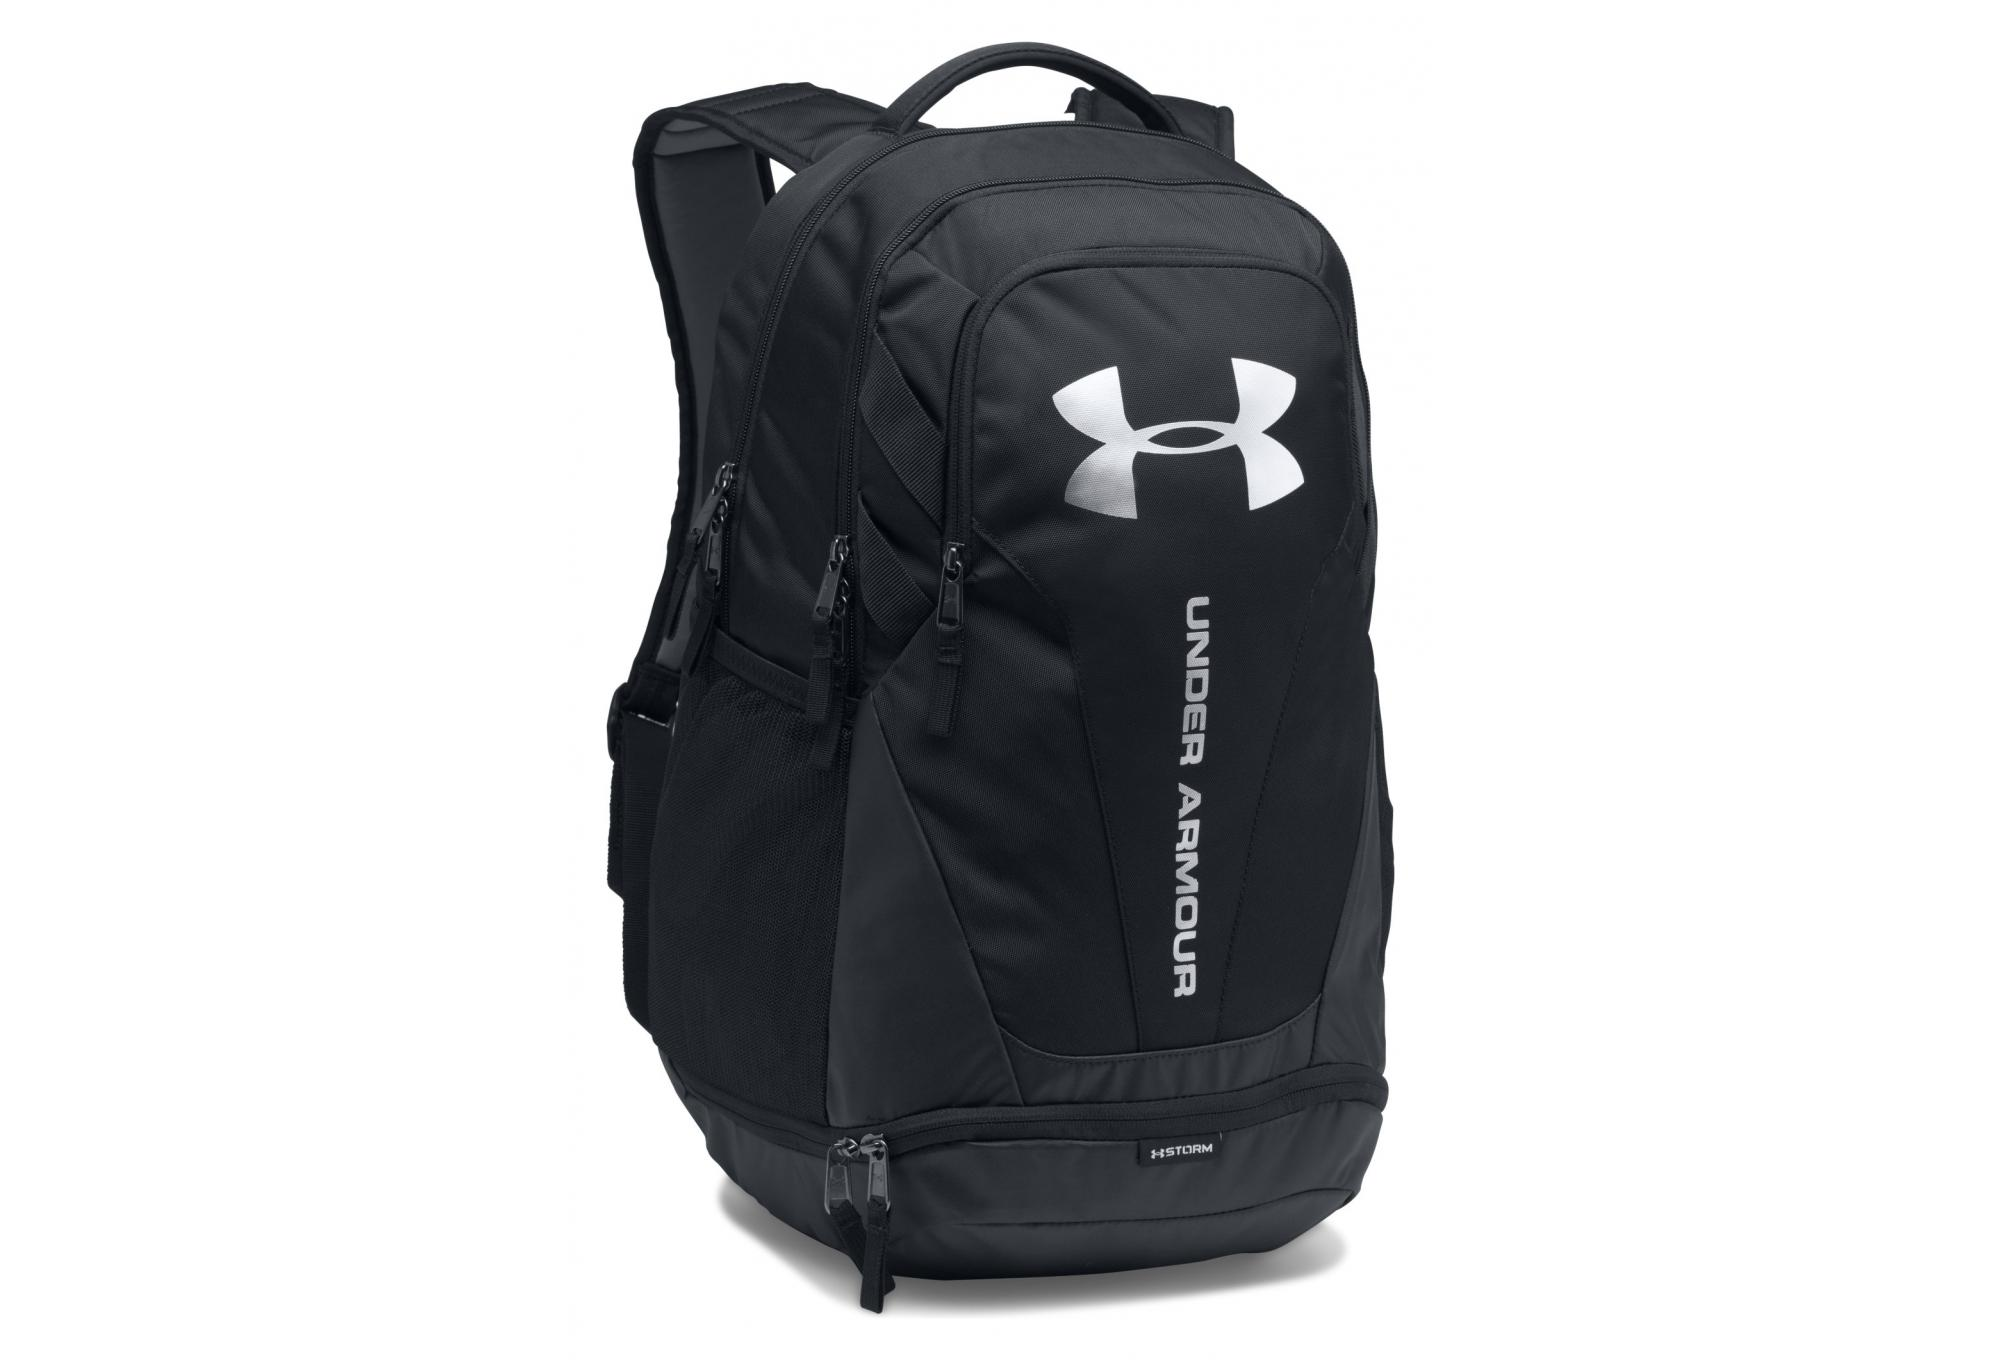 b5838197f Mochila Under Armour Hustle 3.0 negra | Alltricks.es